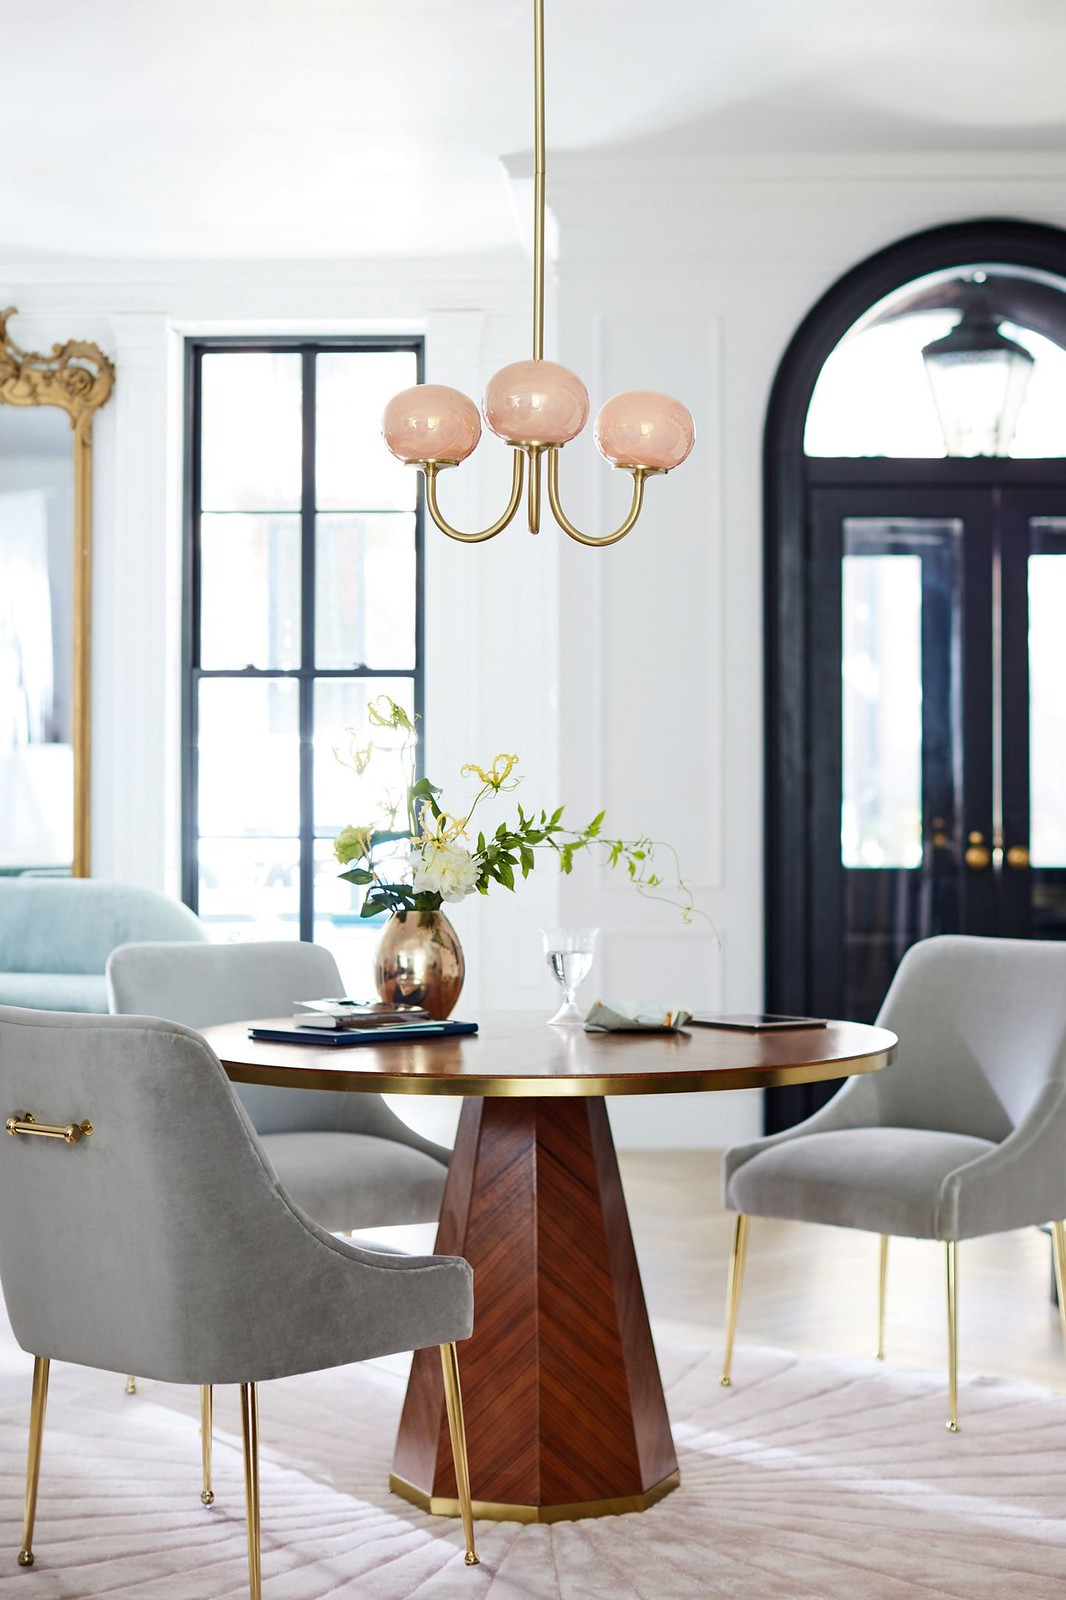 Clean Modern Home Decor | Anthropologie Velvet Elowen Chair |Light Gray Velvet Chairs | Velvet Dining Room Chairs | Velvet Dining Chairs | Dining Room Inspiration | Dining Room Ideas | Dining Room Decor | Globe Chandelier Light Fixture